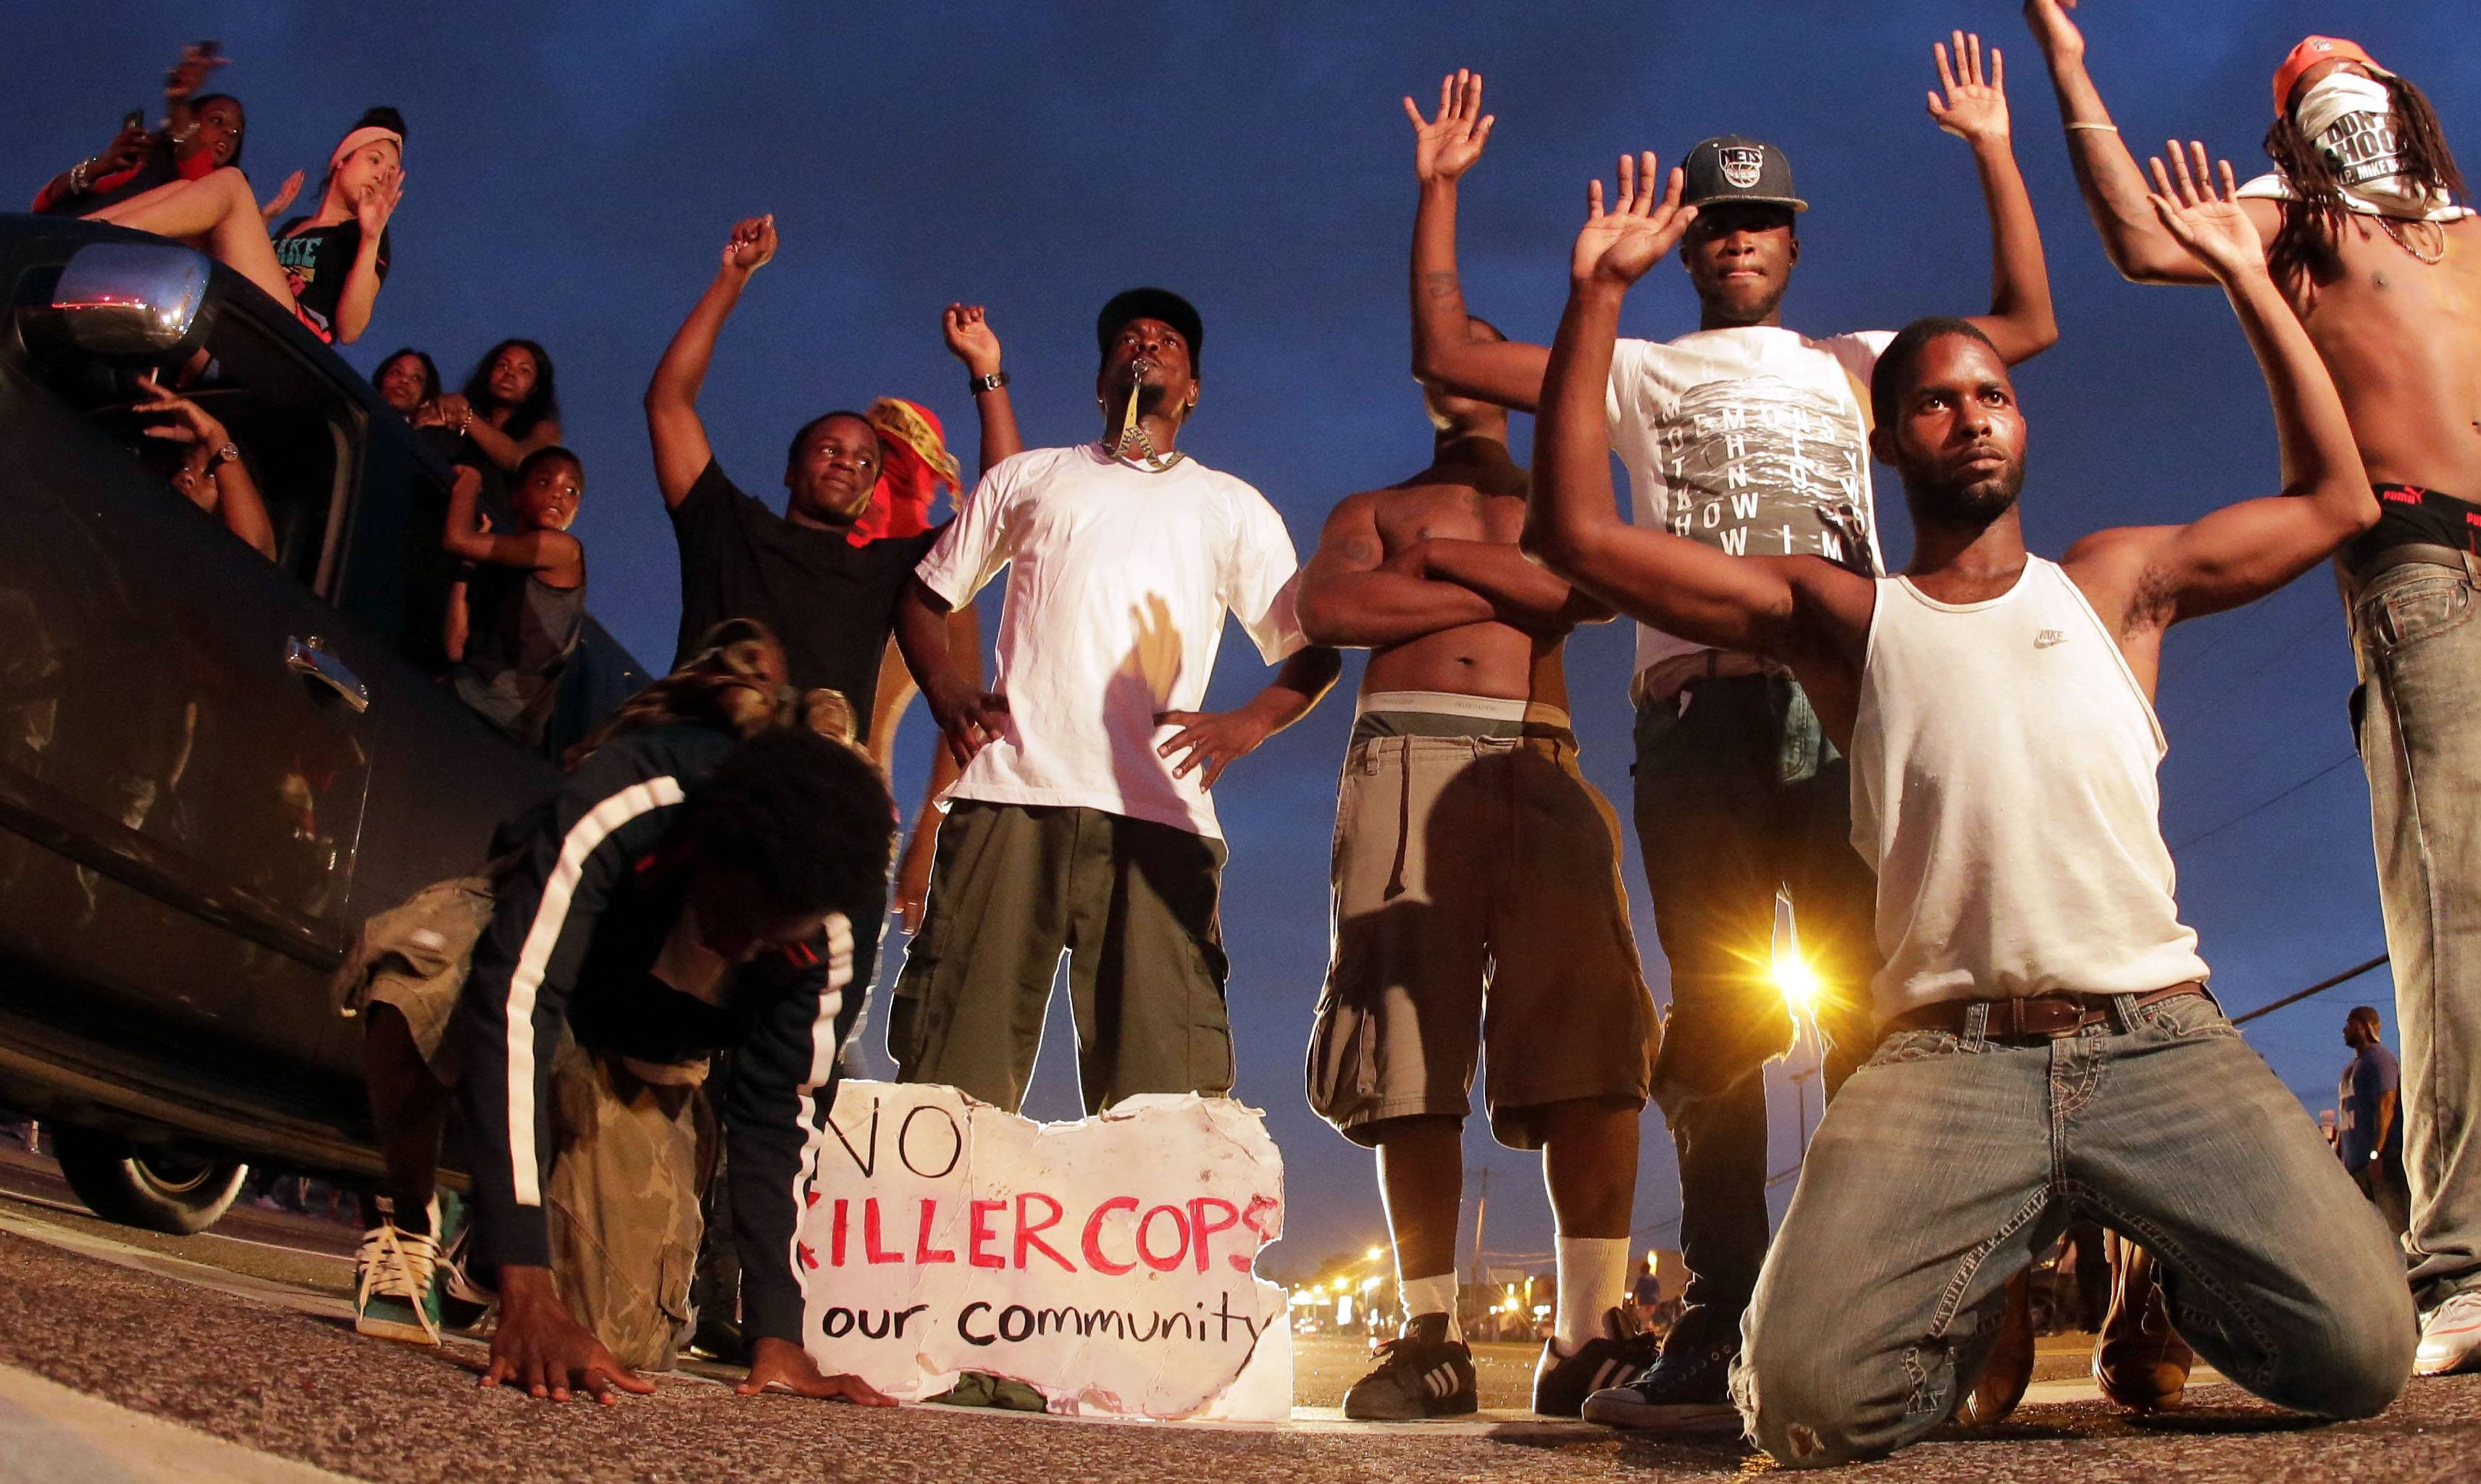 People protest for Michael Brown, who was killed by a police officer in Ferguson, Mo., in this Aug. 17 file photo.